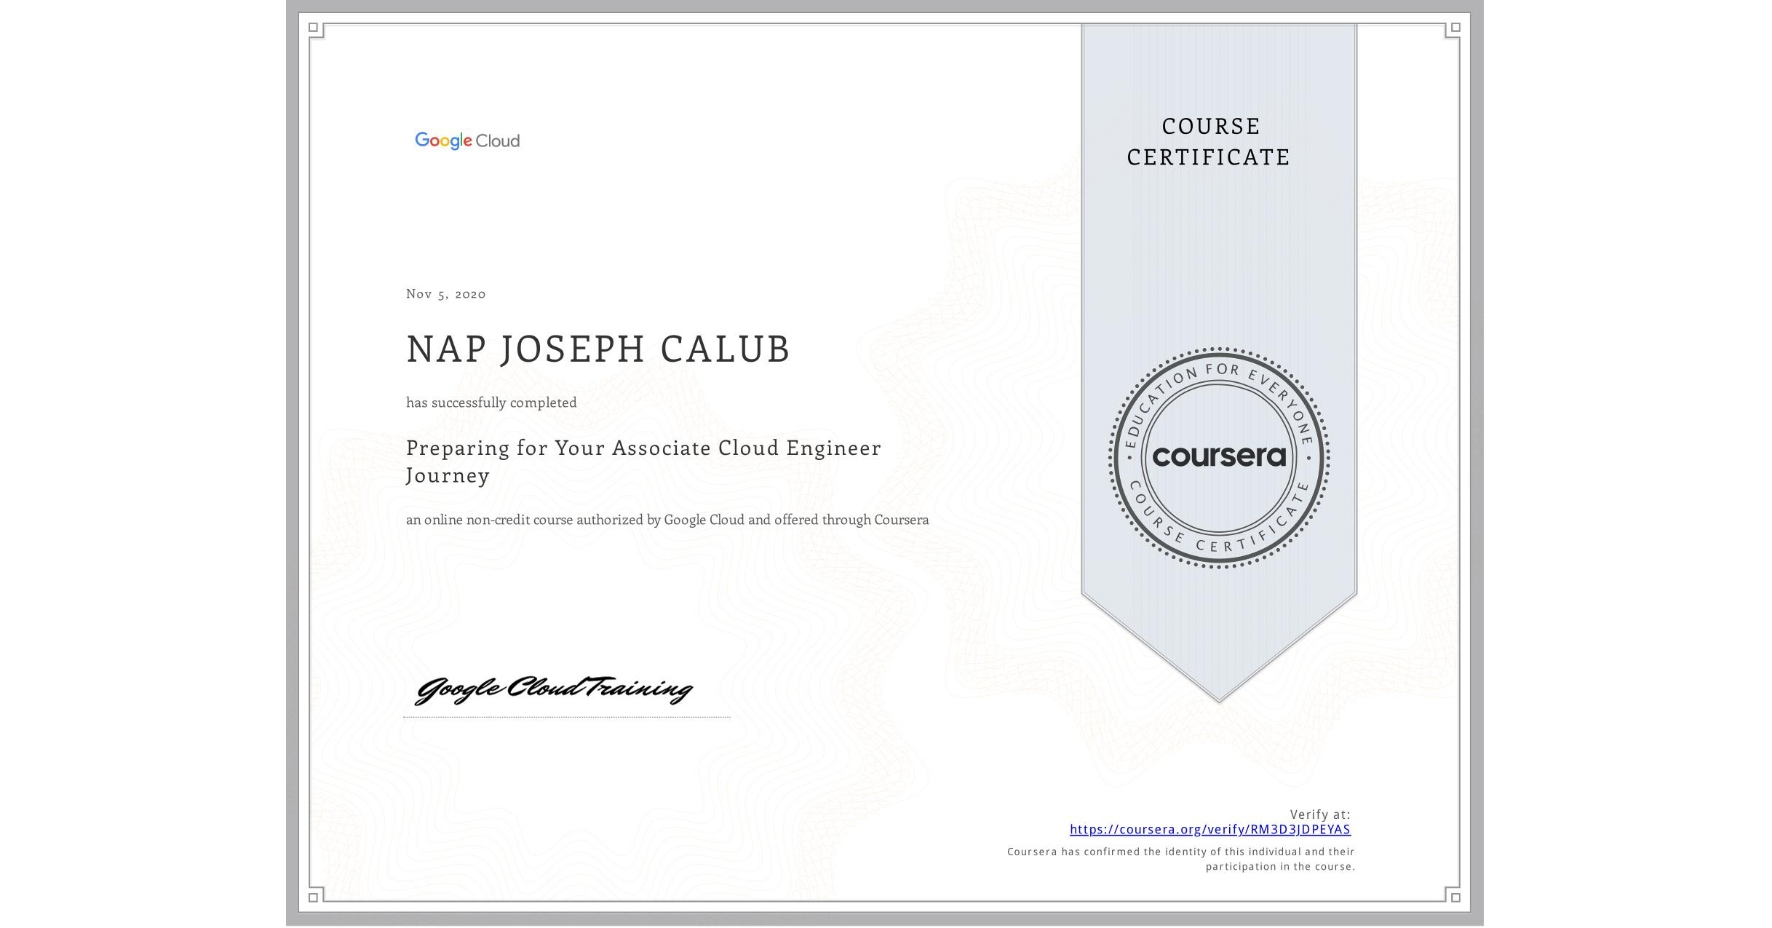 View certificate for NAP JOSEPH  CALUB, Preparing for the Google Cloud Associate Cloud Engineer Exam, an online non-credit course authorized by Google Cloud and offered through Coursera